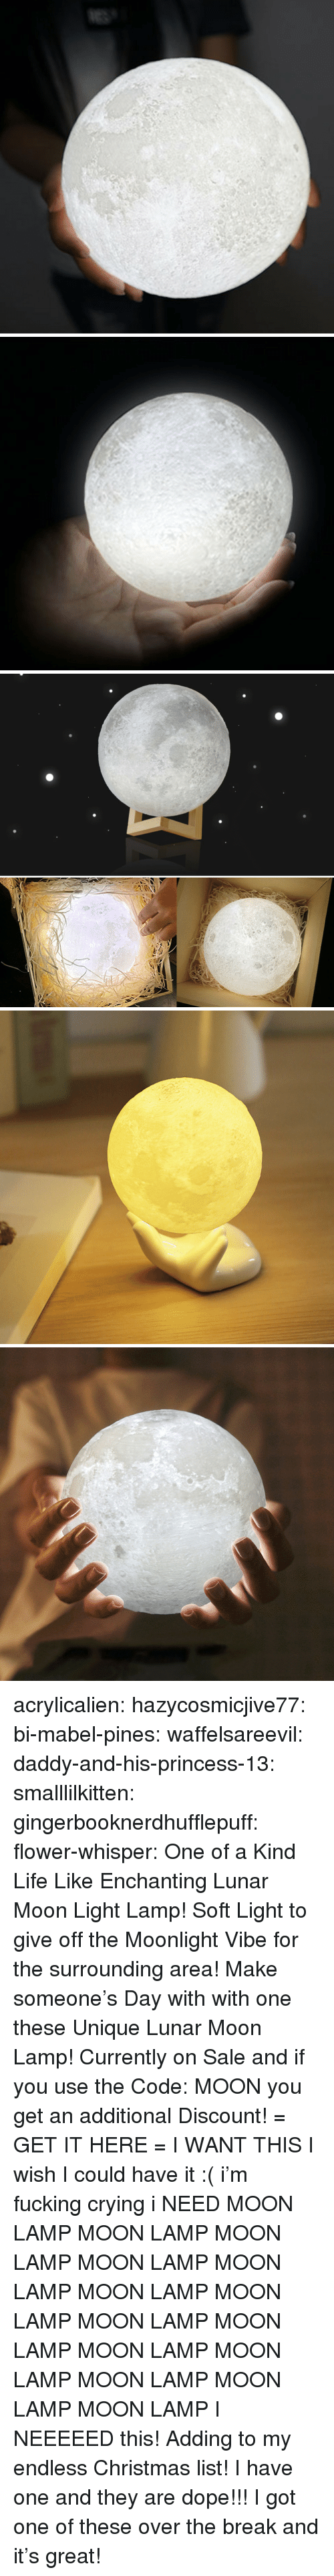 luna: acrylicalien:  hazycosmicjive77:  bi-mabel-pines:  waffelsareevil:   daddy-and-his-princess-13:  smalllilkitten:   gingerbooknerdhufflepuff:   flower-whisper:  One of a Kind Life Like Enchanting Lunar Moon Light Lamp! Soft Light to give off the Moonlight Vibe for the surrounding area! Make someone's Day with with one these Unique Lunar Moon Lamp! Currently on Sale and if you use the Code: MOON you get an additional Discount! = GET IT HERE =   I WANT THIS   I wish I could have it :(   i'm fucking crying i NEED   MOON LAMP MOON LAMP MOON LAMP MOON LAMP MOON LAMP MOON LAMP MOON LAMP MOON LAMP MOON LAMP MOON LAMP MOON LAMP MOON LAMP MOON LAMP MOON LAMP   I NEEEEED this! Adding to my endless Christmas list!  I have one and they are dope!!!   I got one of these over the break and it's great!